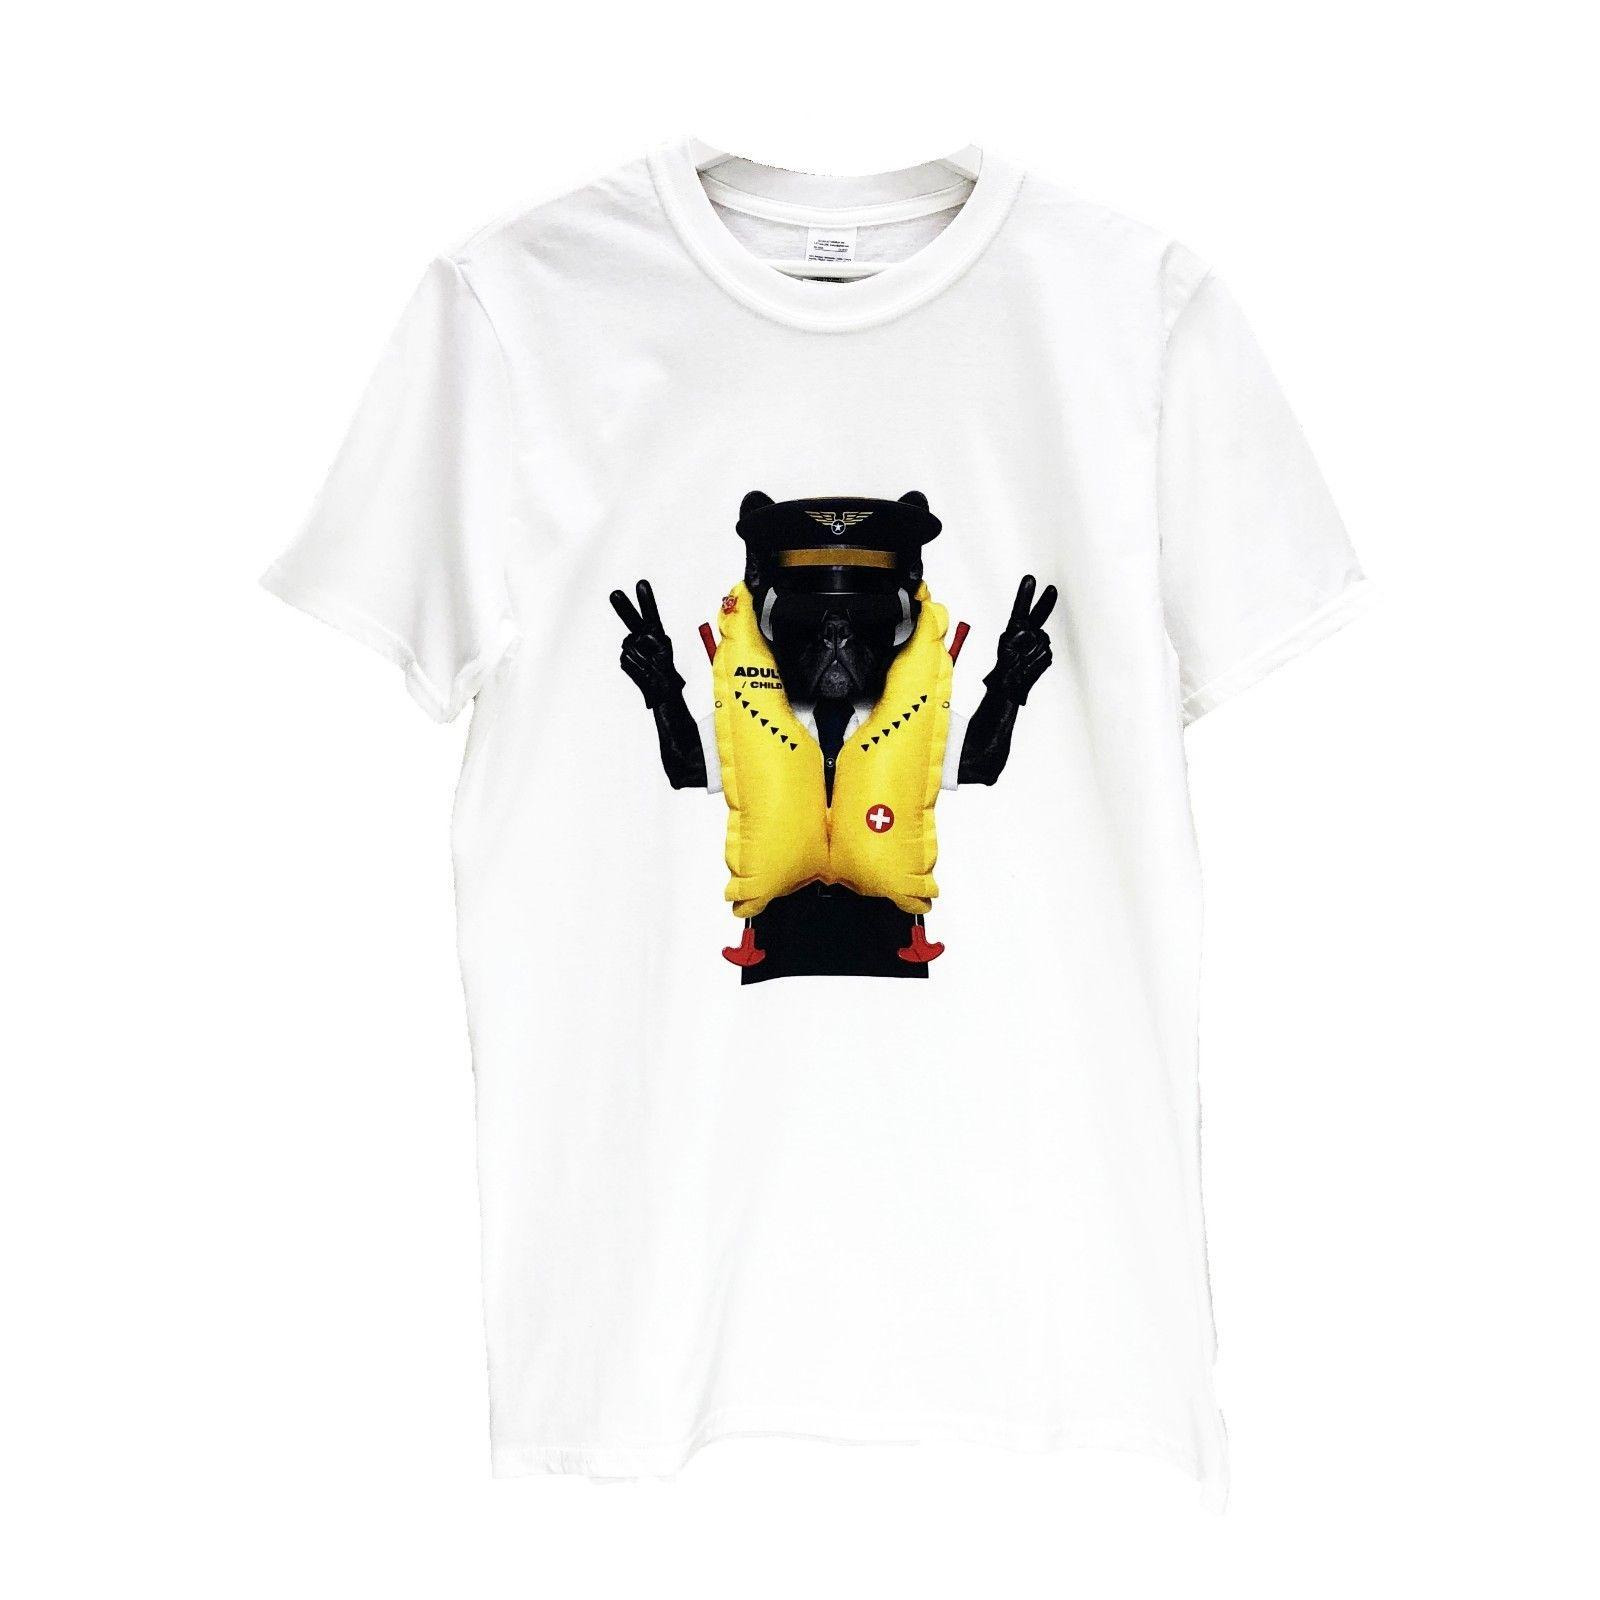 cfec635bf7f27c Bulldog Damen WEISS Unisex T Shirt White Black Grey Red Trousers Tshirt  RETRO VINTAGE Classic T Shirt Rude T Shirt Shirt With T Shirt From Fivecup